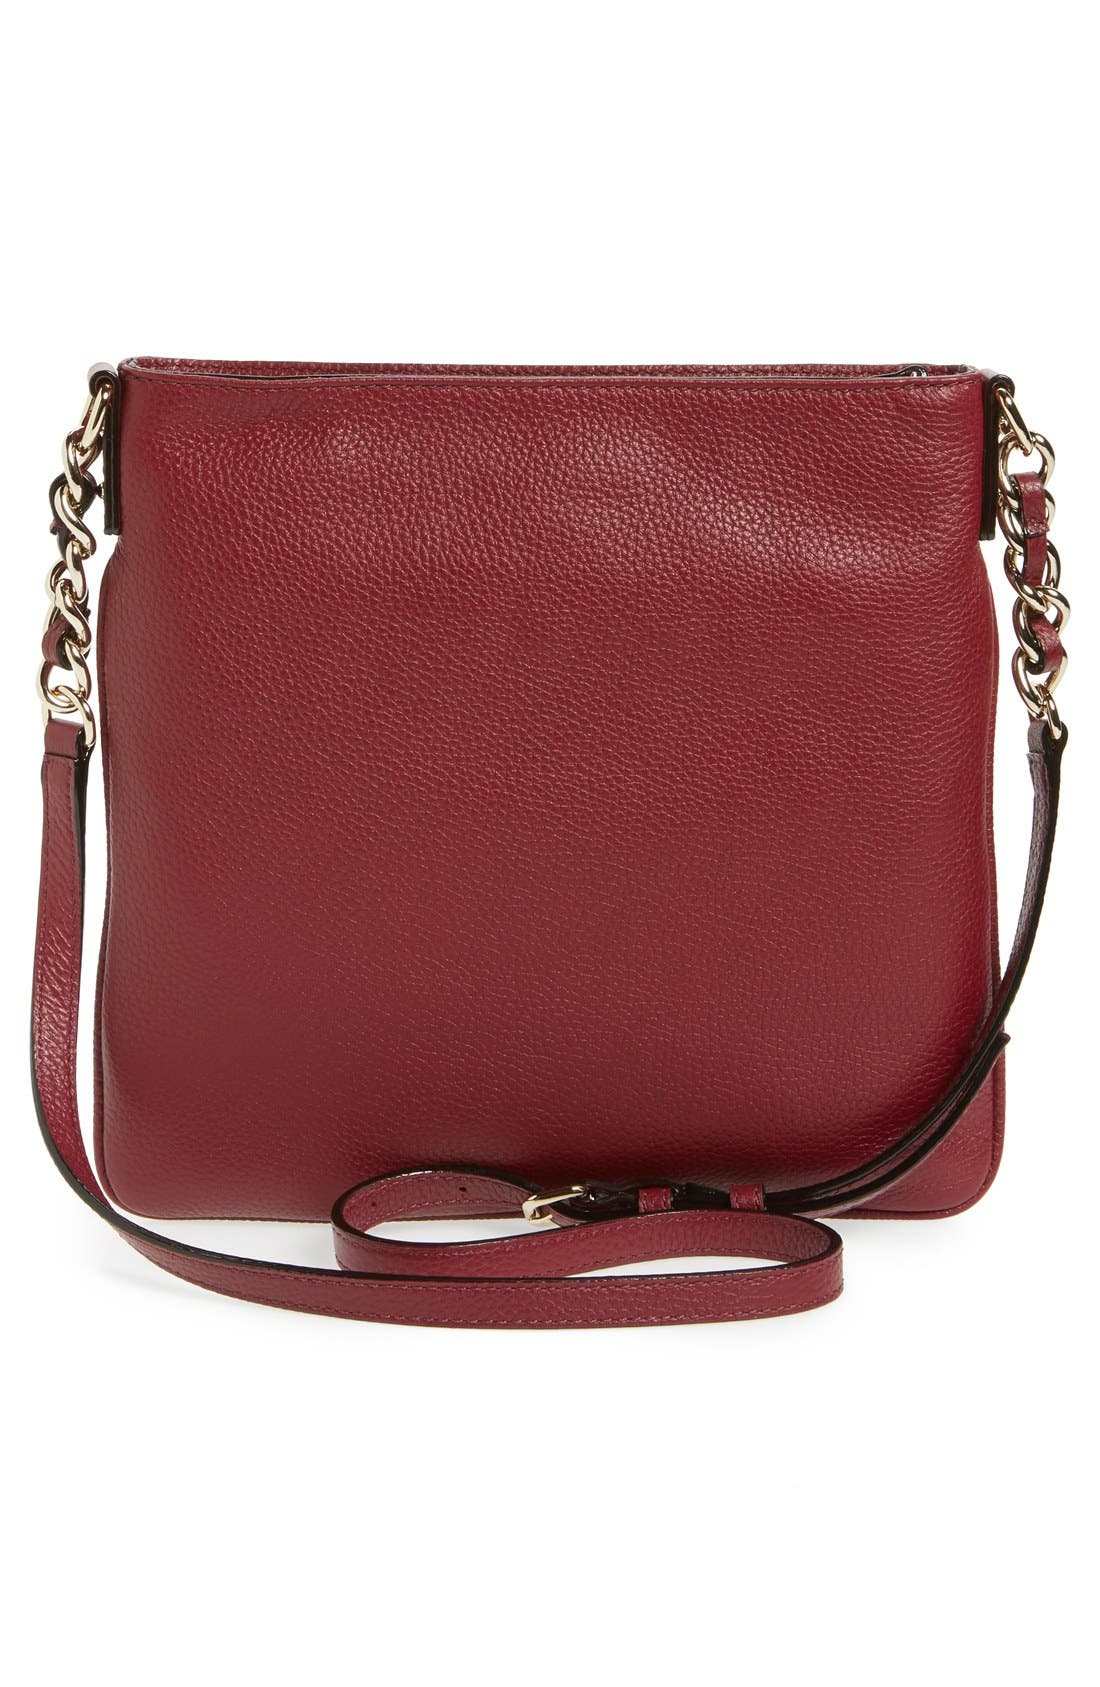 Alternate Image 3  - kate spade new york 'cobble hill - ellen' leather crossbody bag